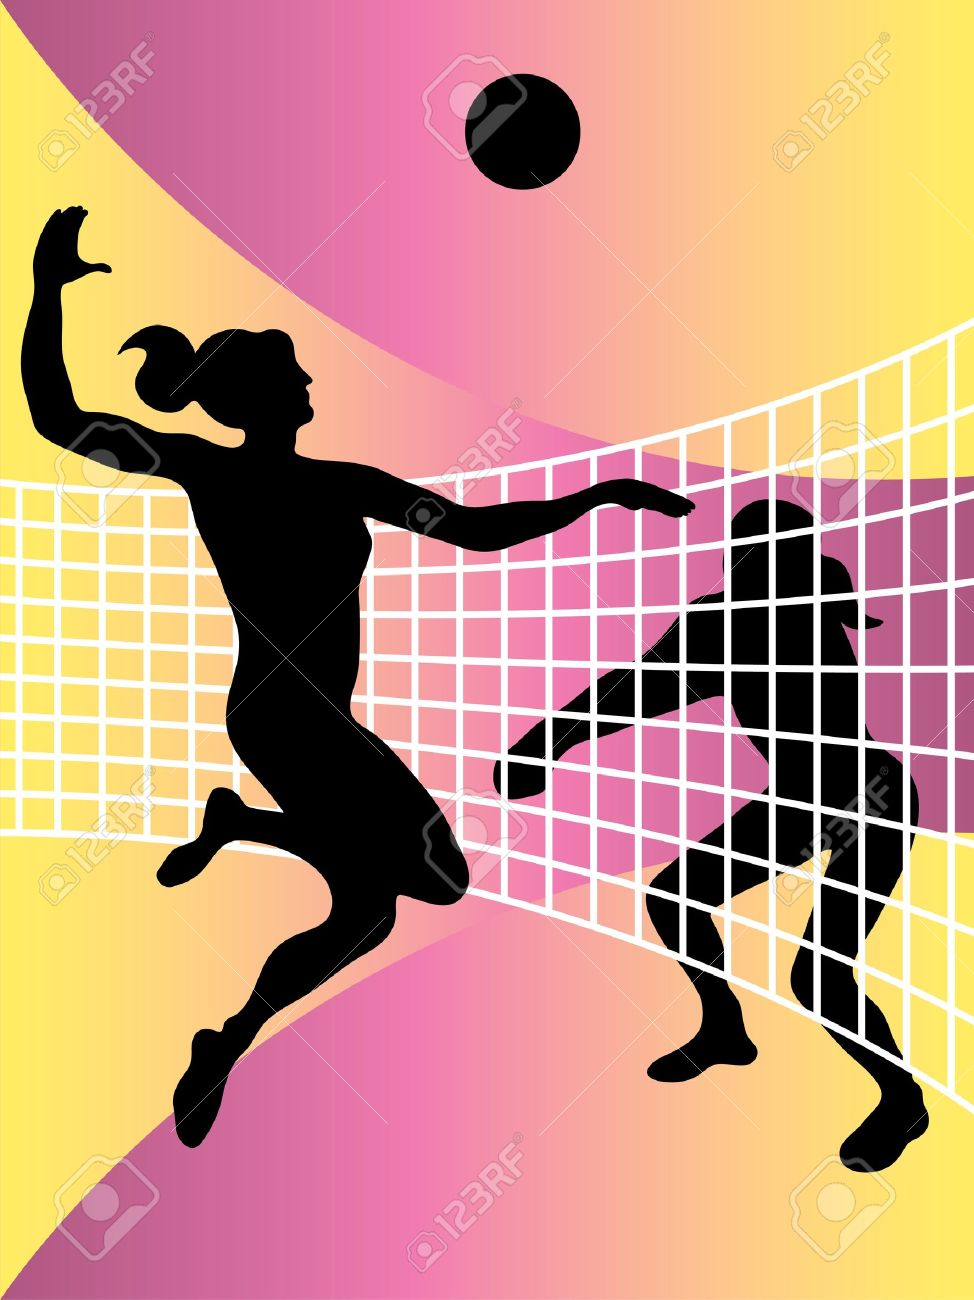 974x1300 Vector Abstract Illustration Of Volleyball Players Royalty Free